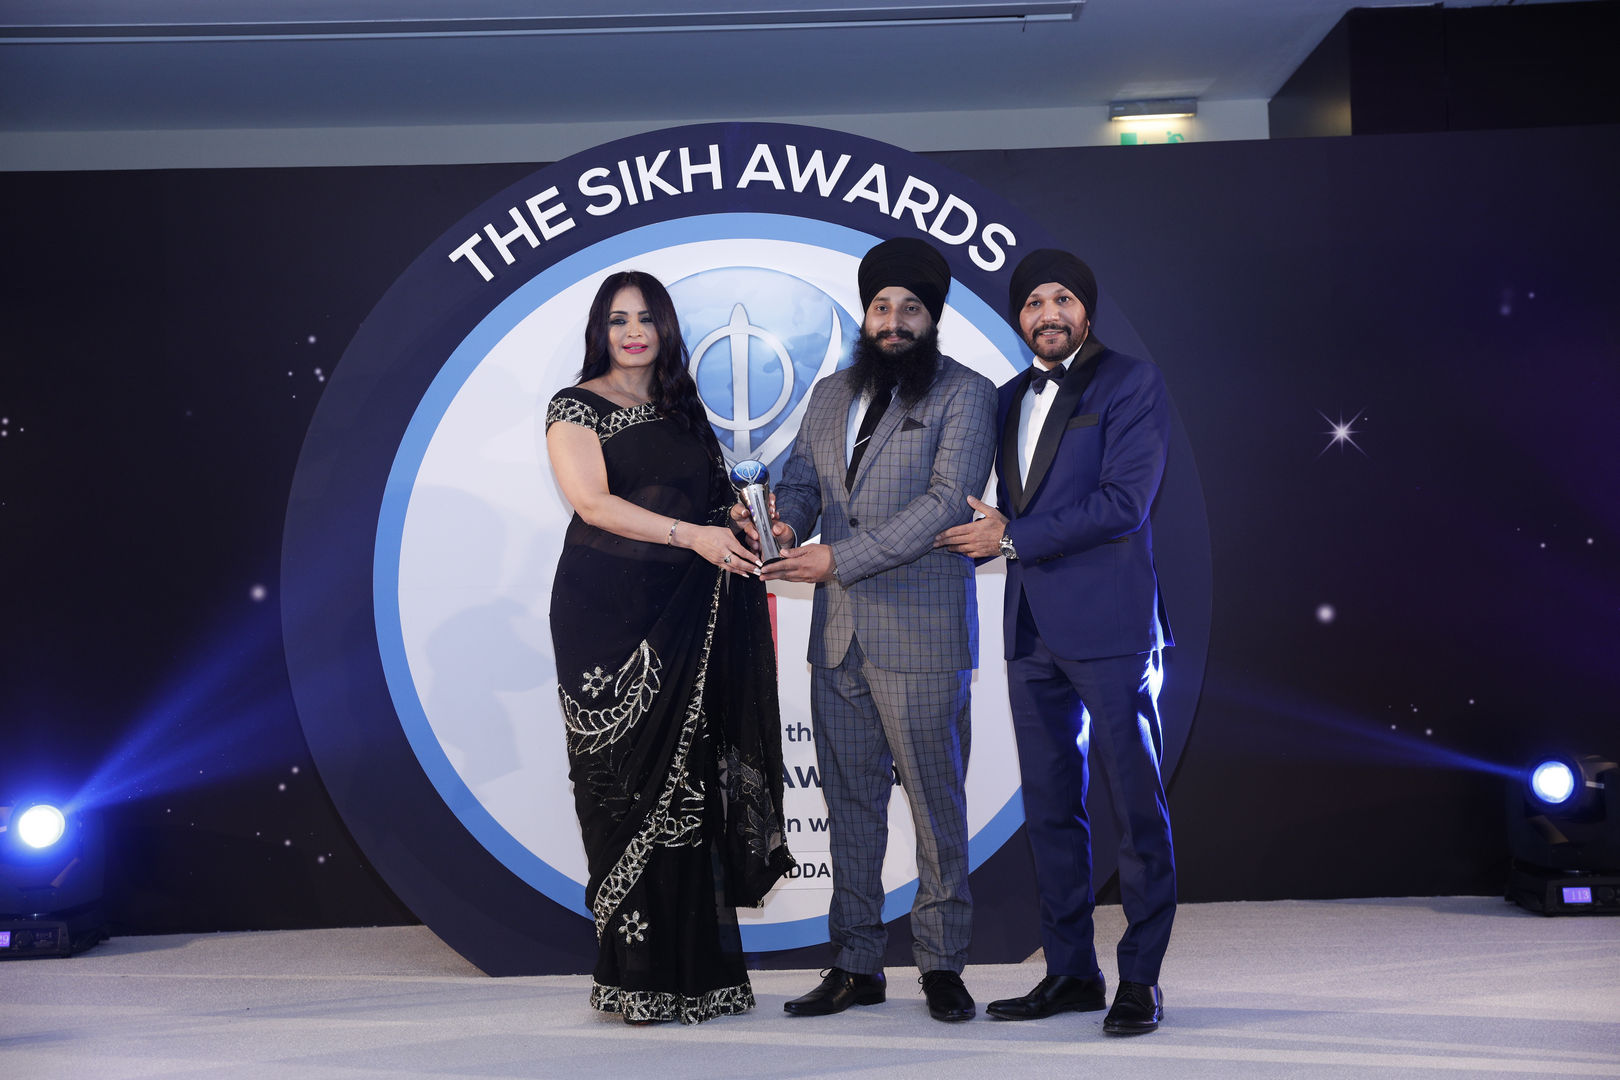 First Ever Sikh Awards Held in Dubai